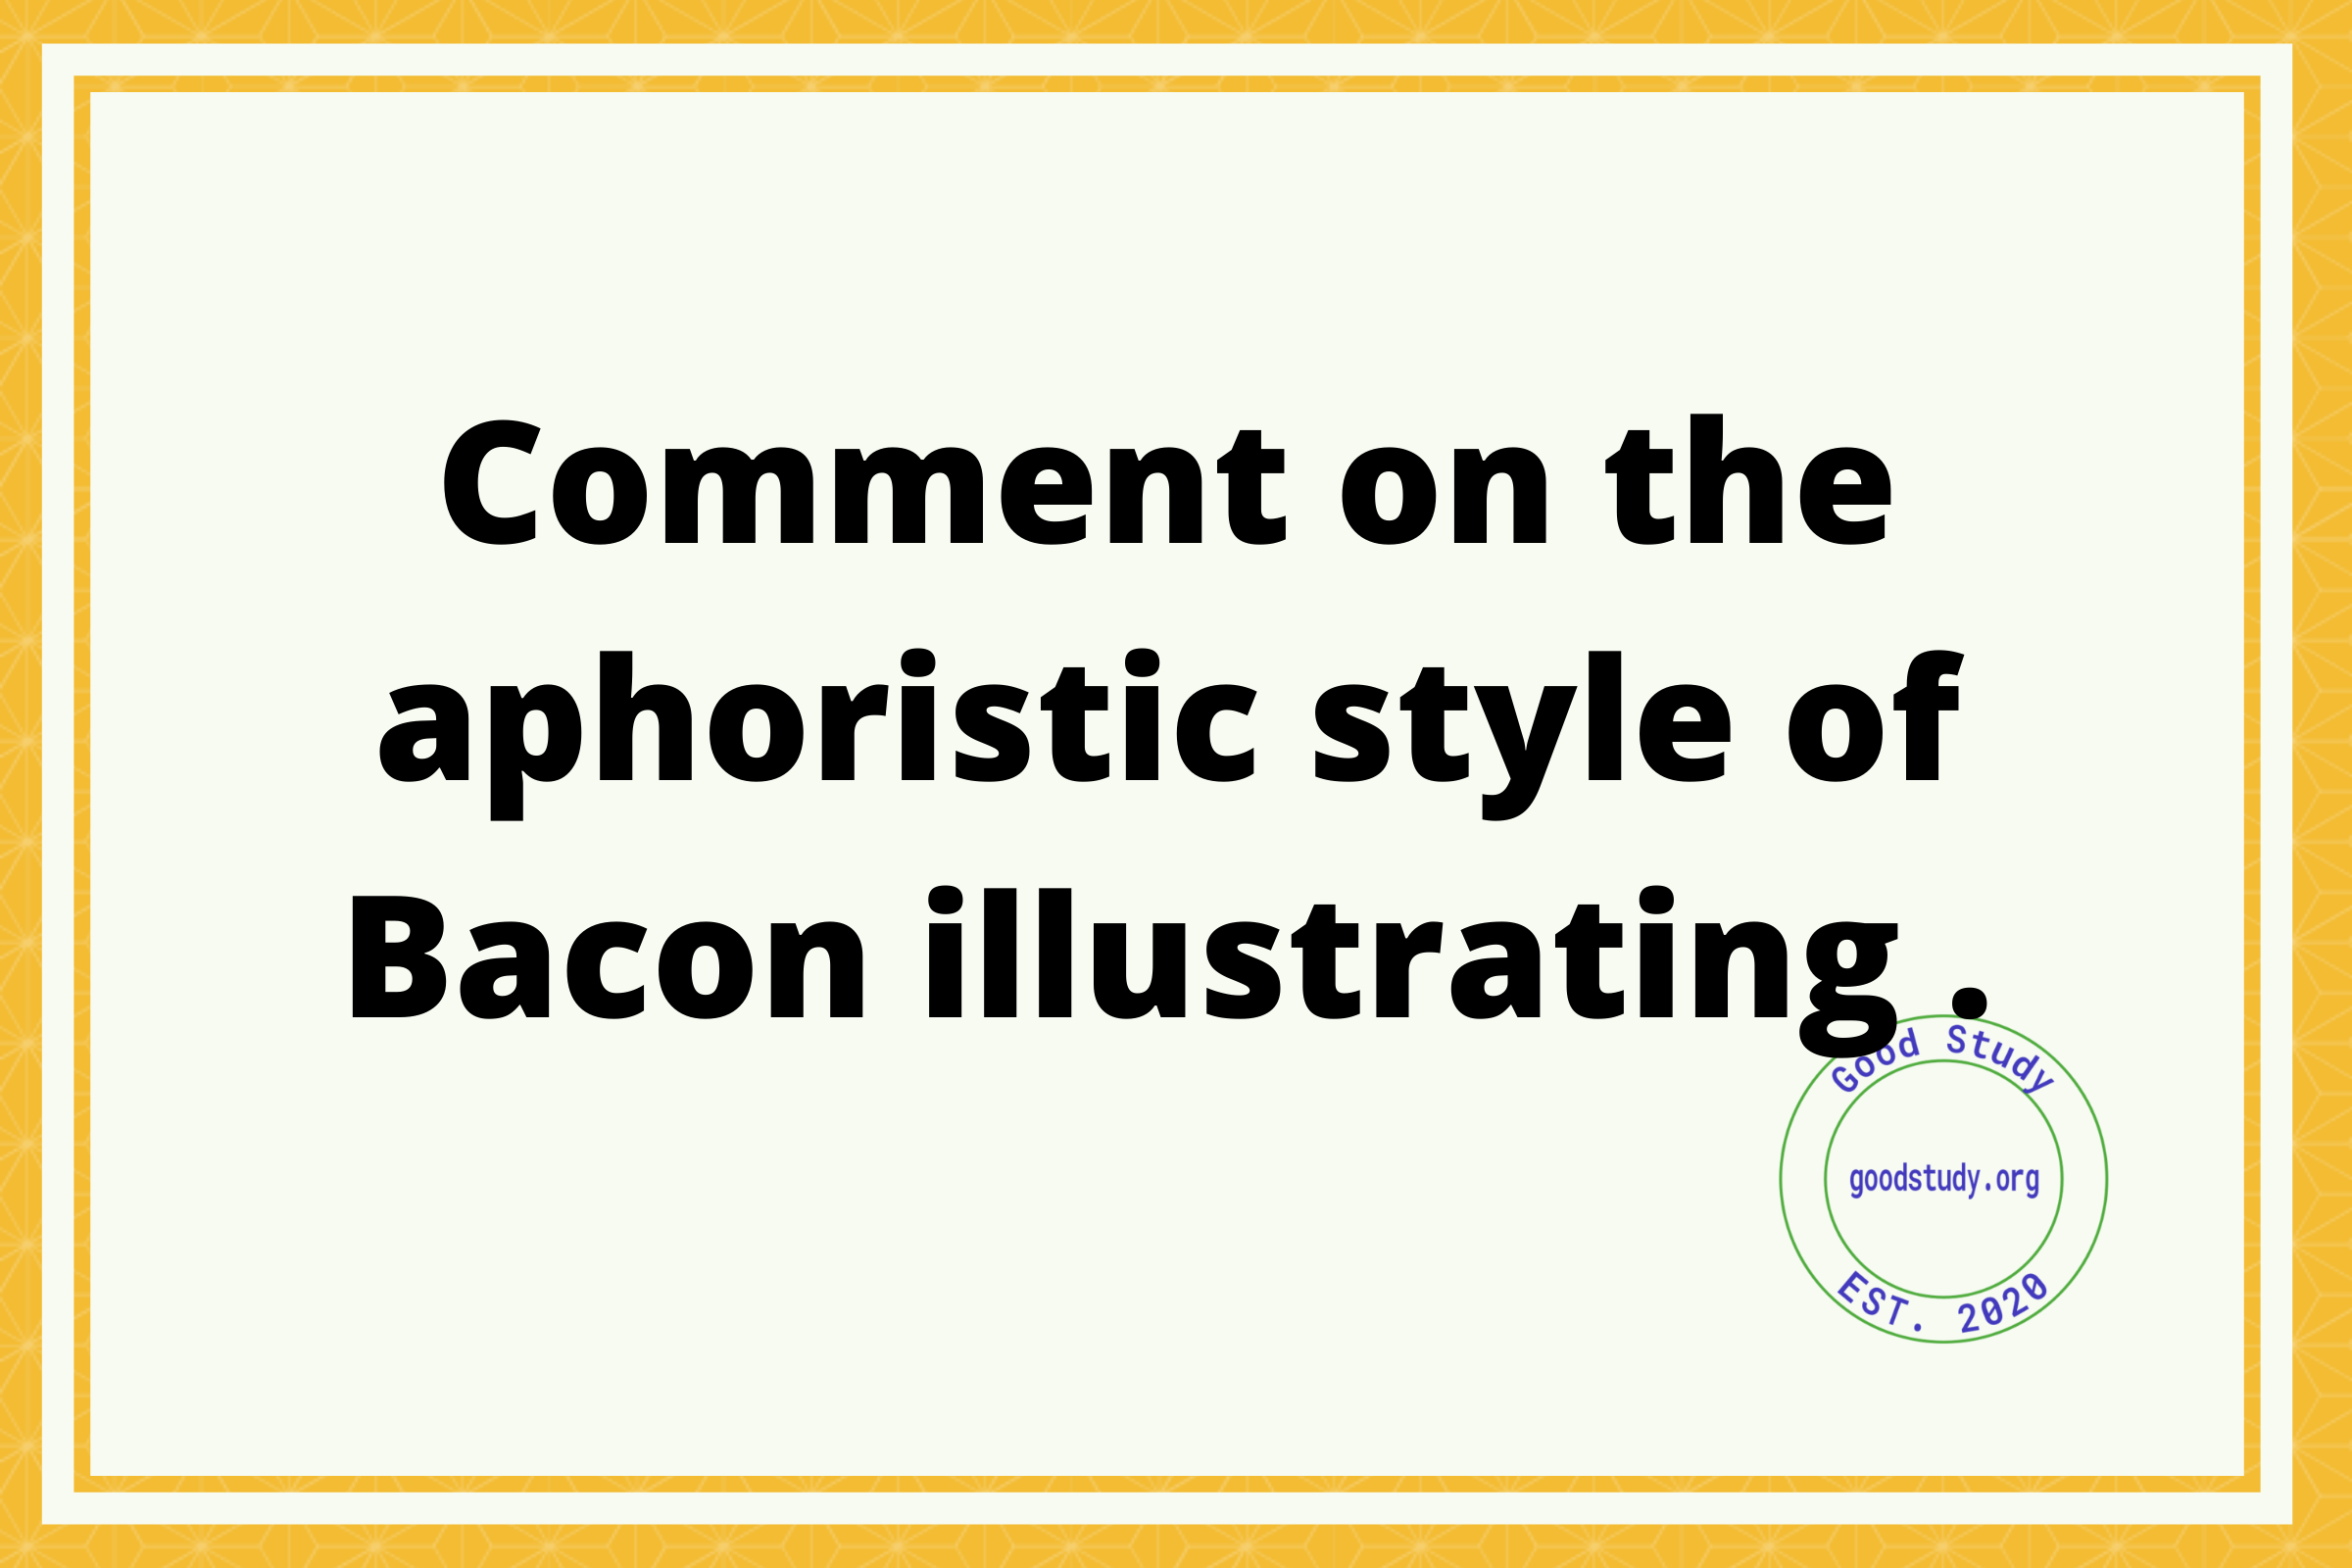 Comment on the aphoristic style of Bacon illustrating .